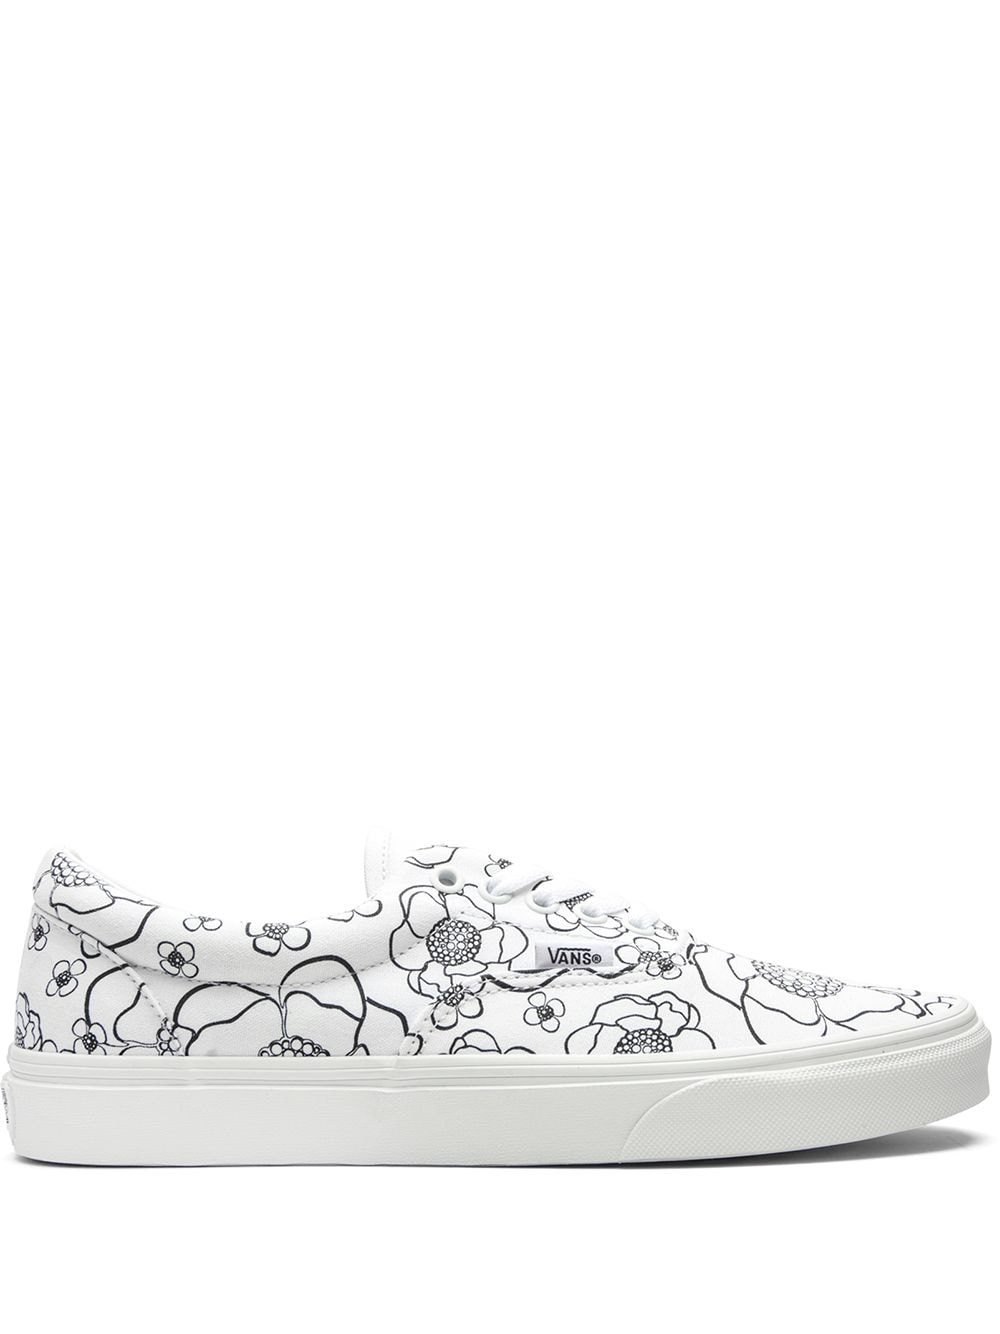 Vans Era low-top sneakers - White von Vans